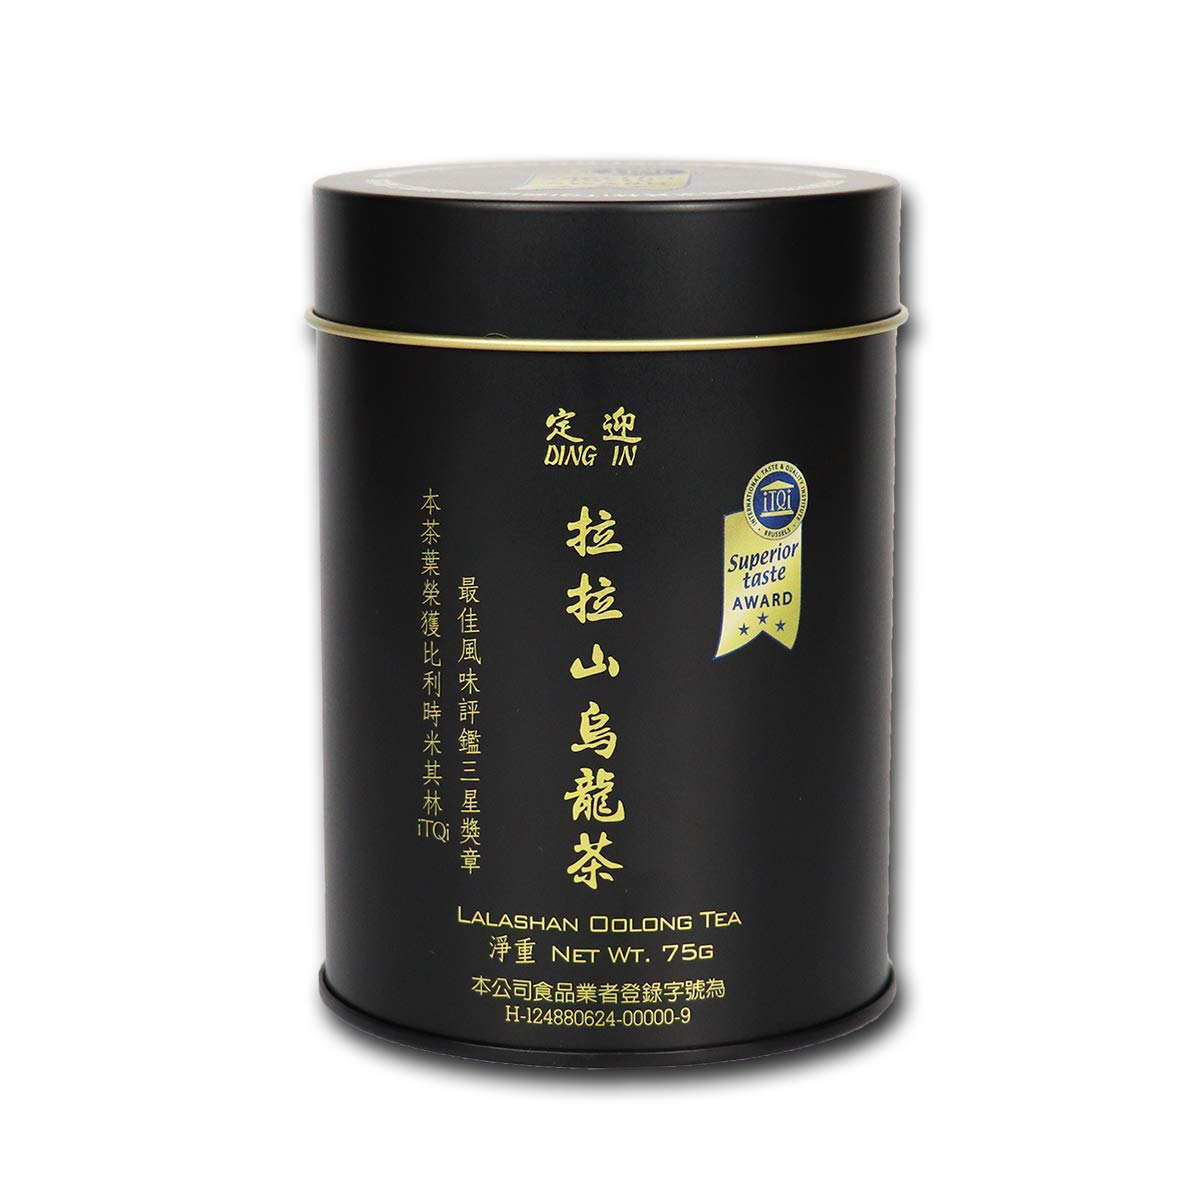 DING IN Lalashan Oolong Tea 75g/can by Ding In ltd. (Image #1)